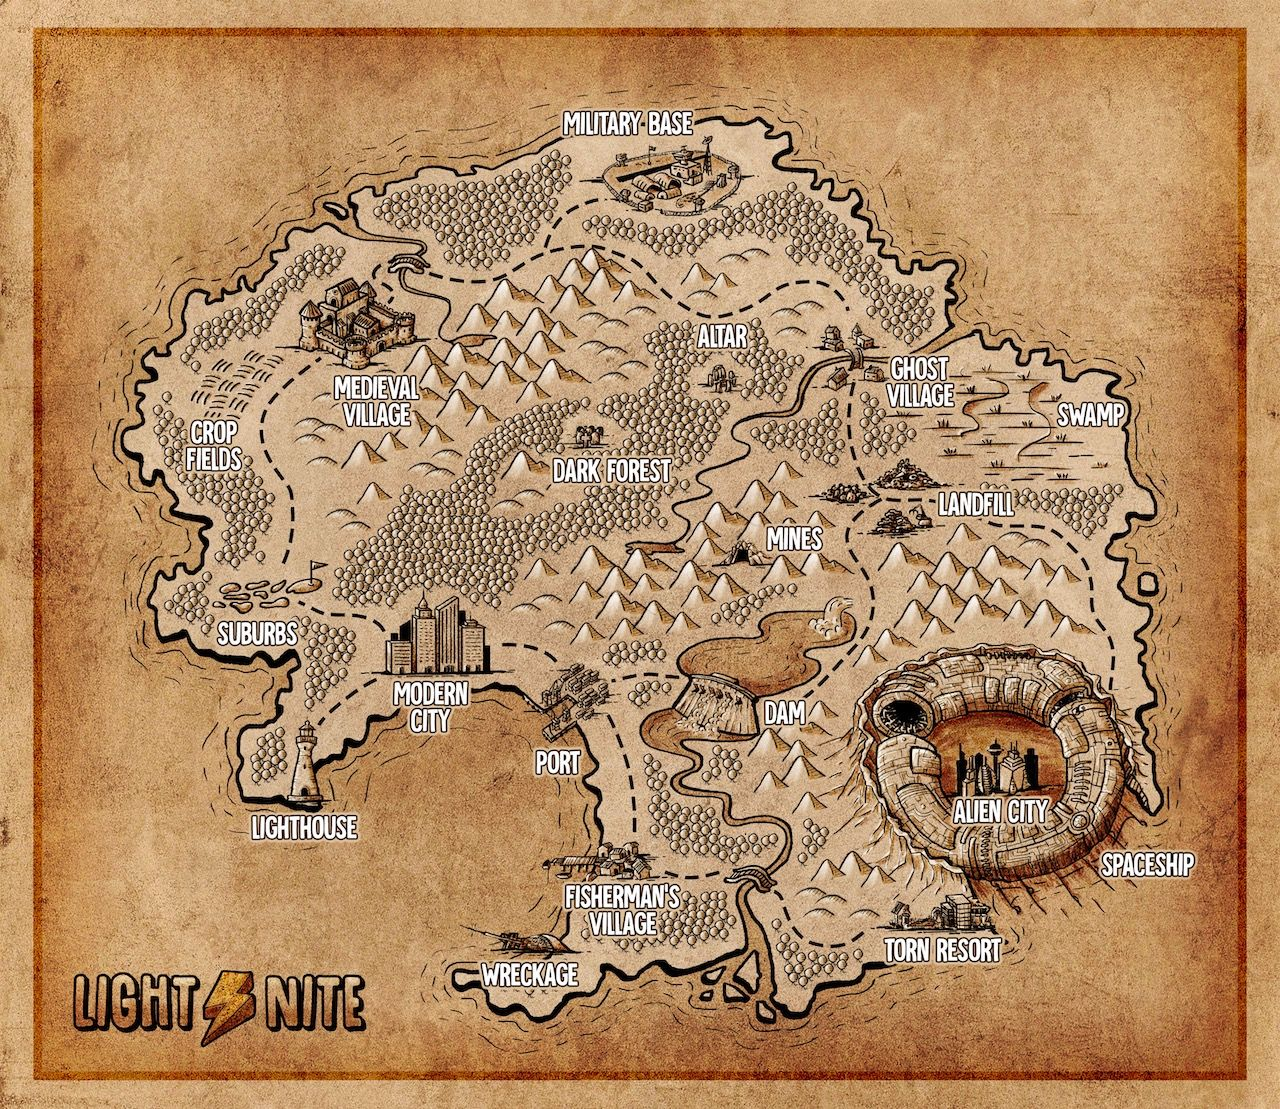 LIGHT⚡NITE - Draft of the game map